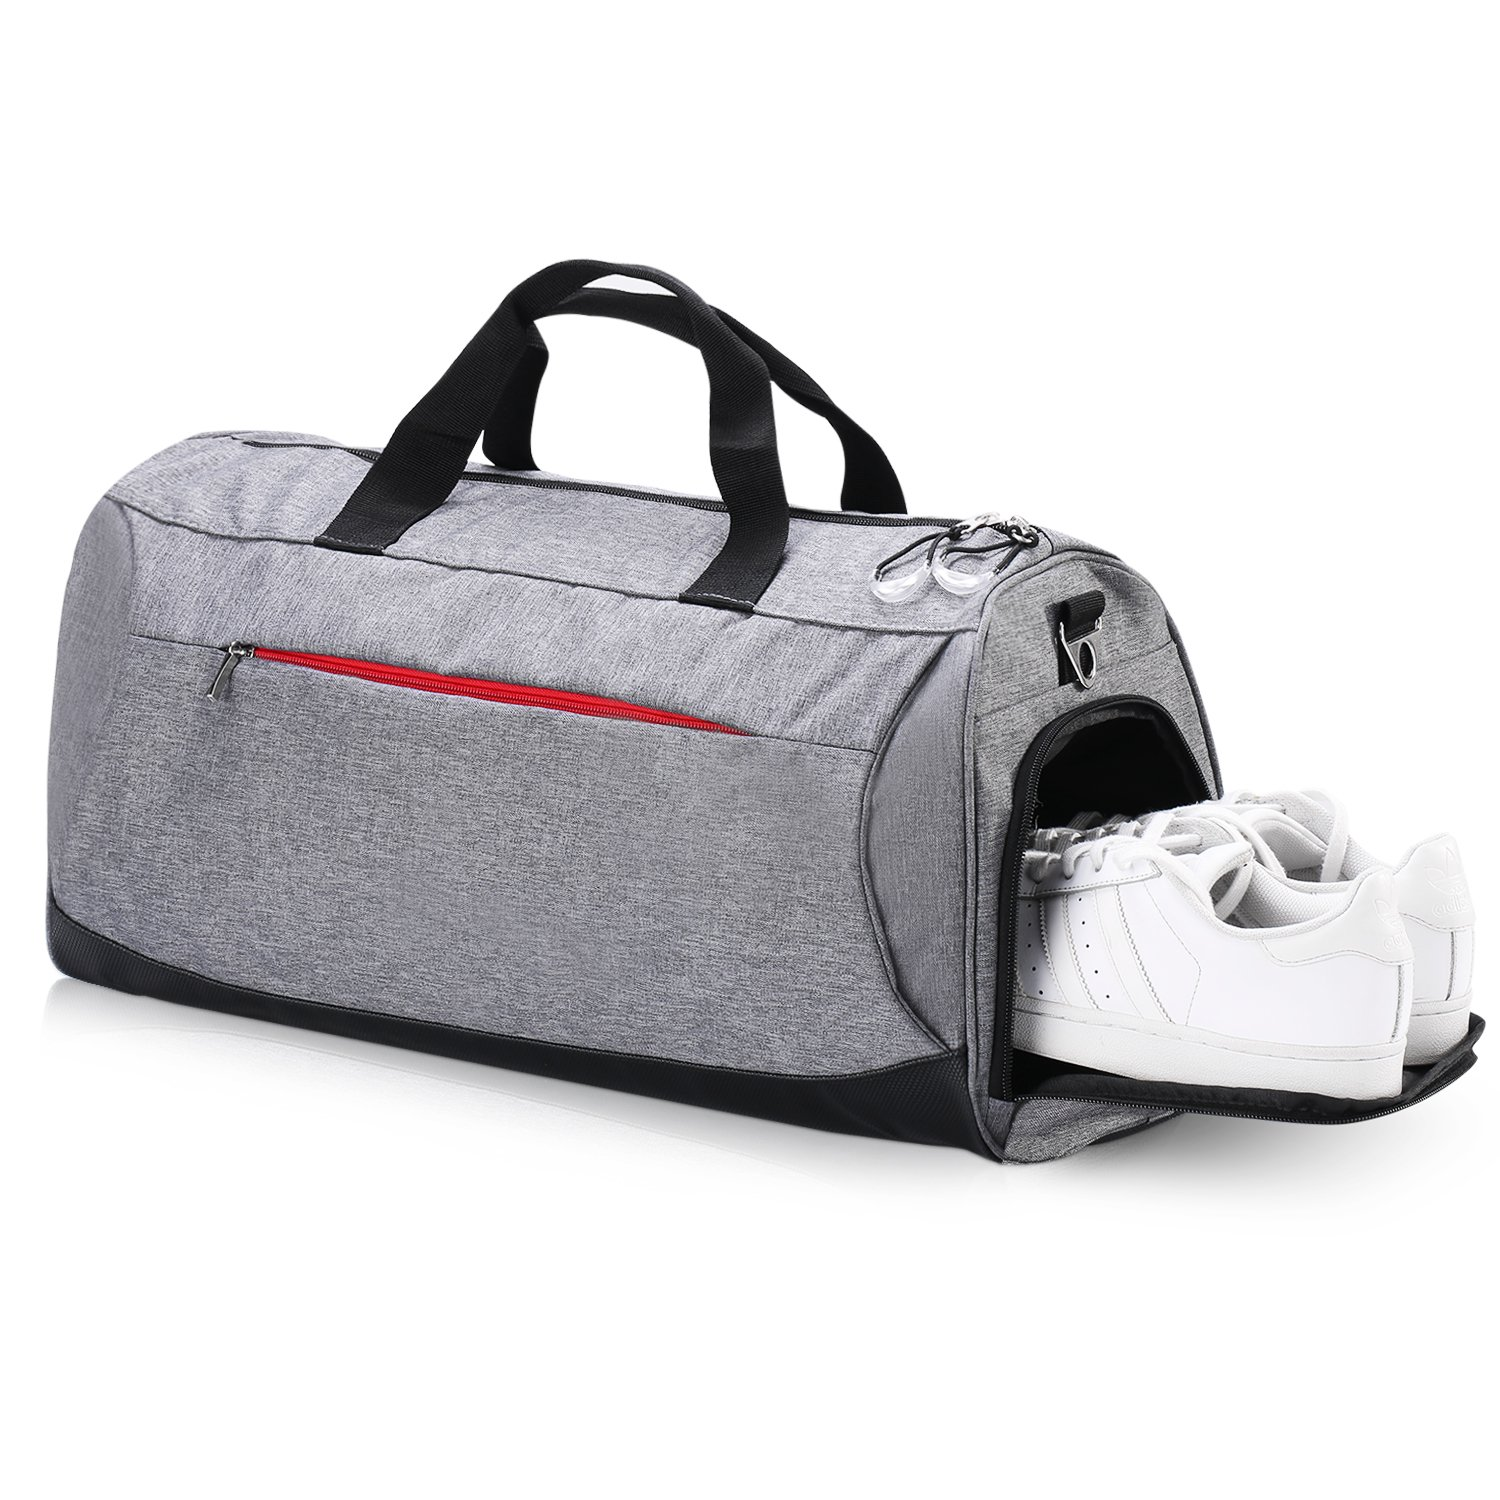 Eocean Sports Gym Bag with Shoes Compartment d78adeadd50fb